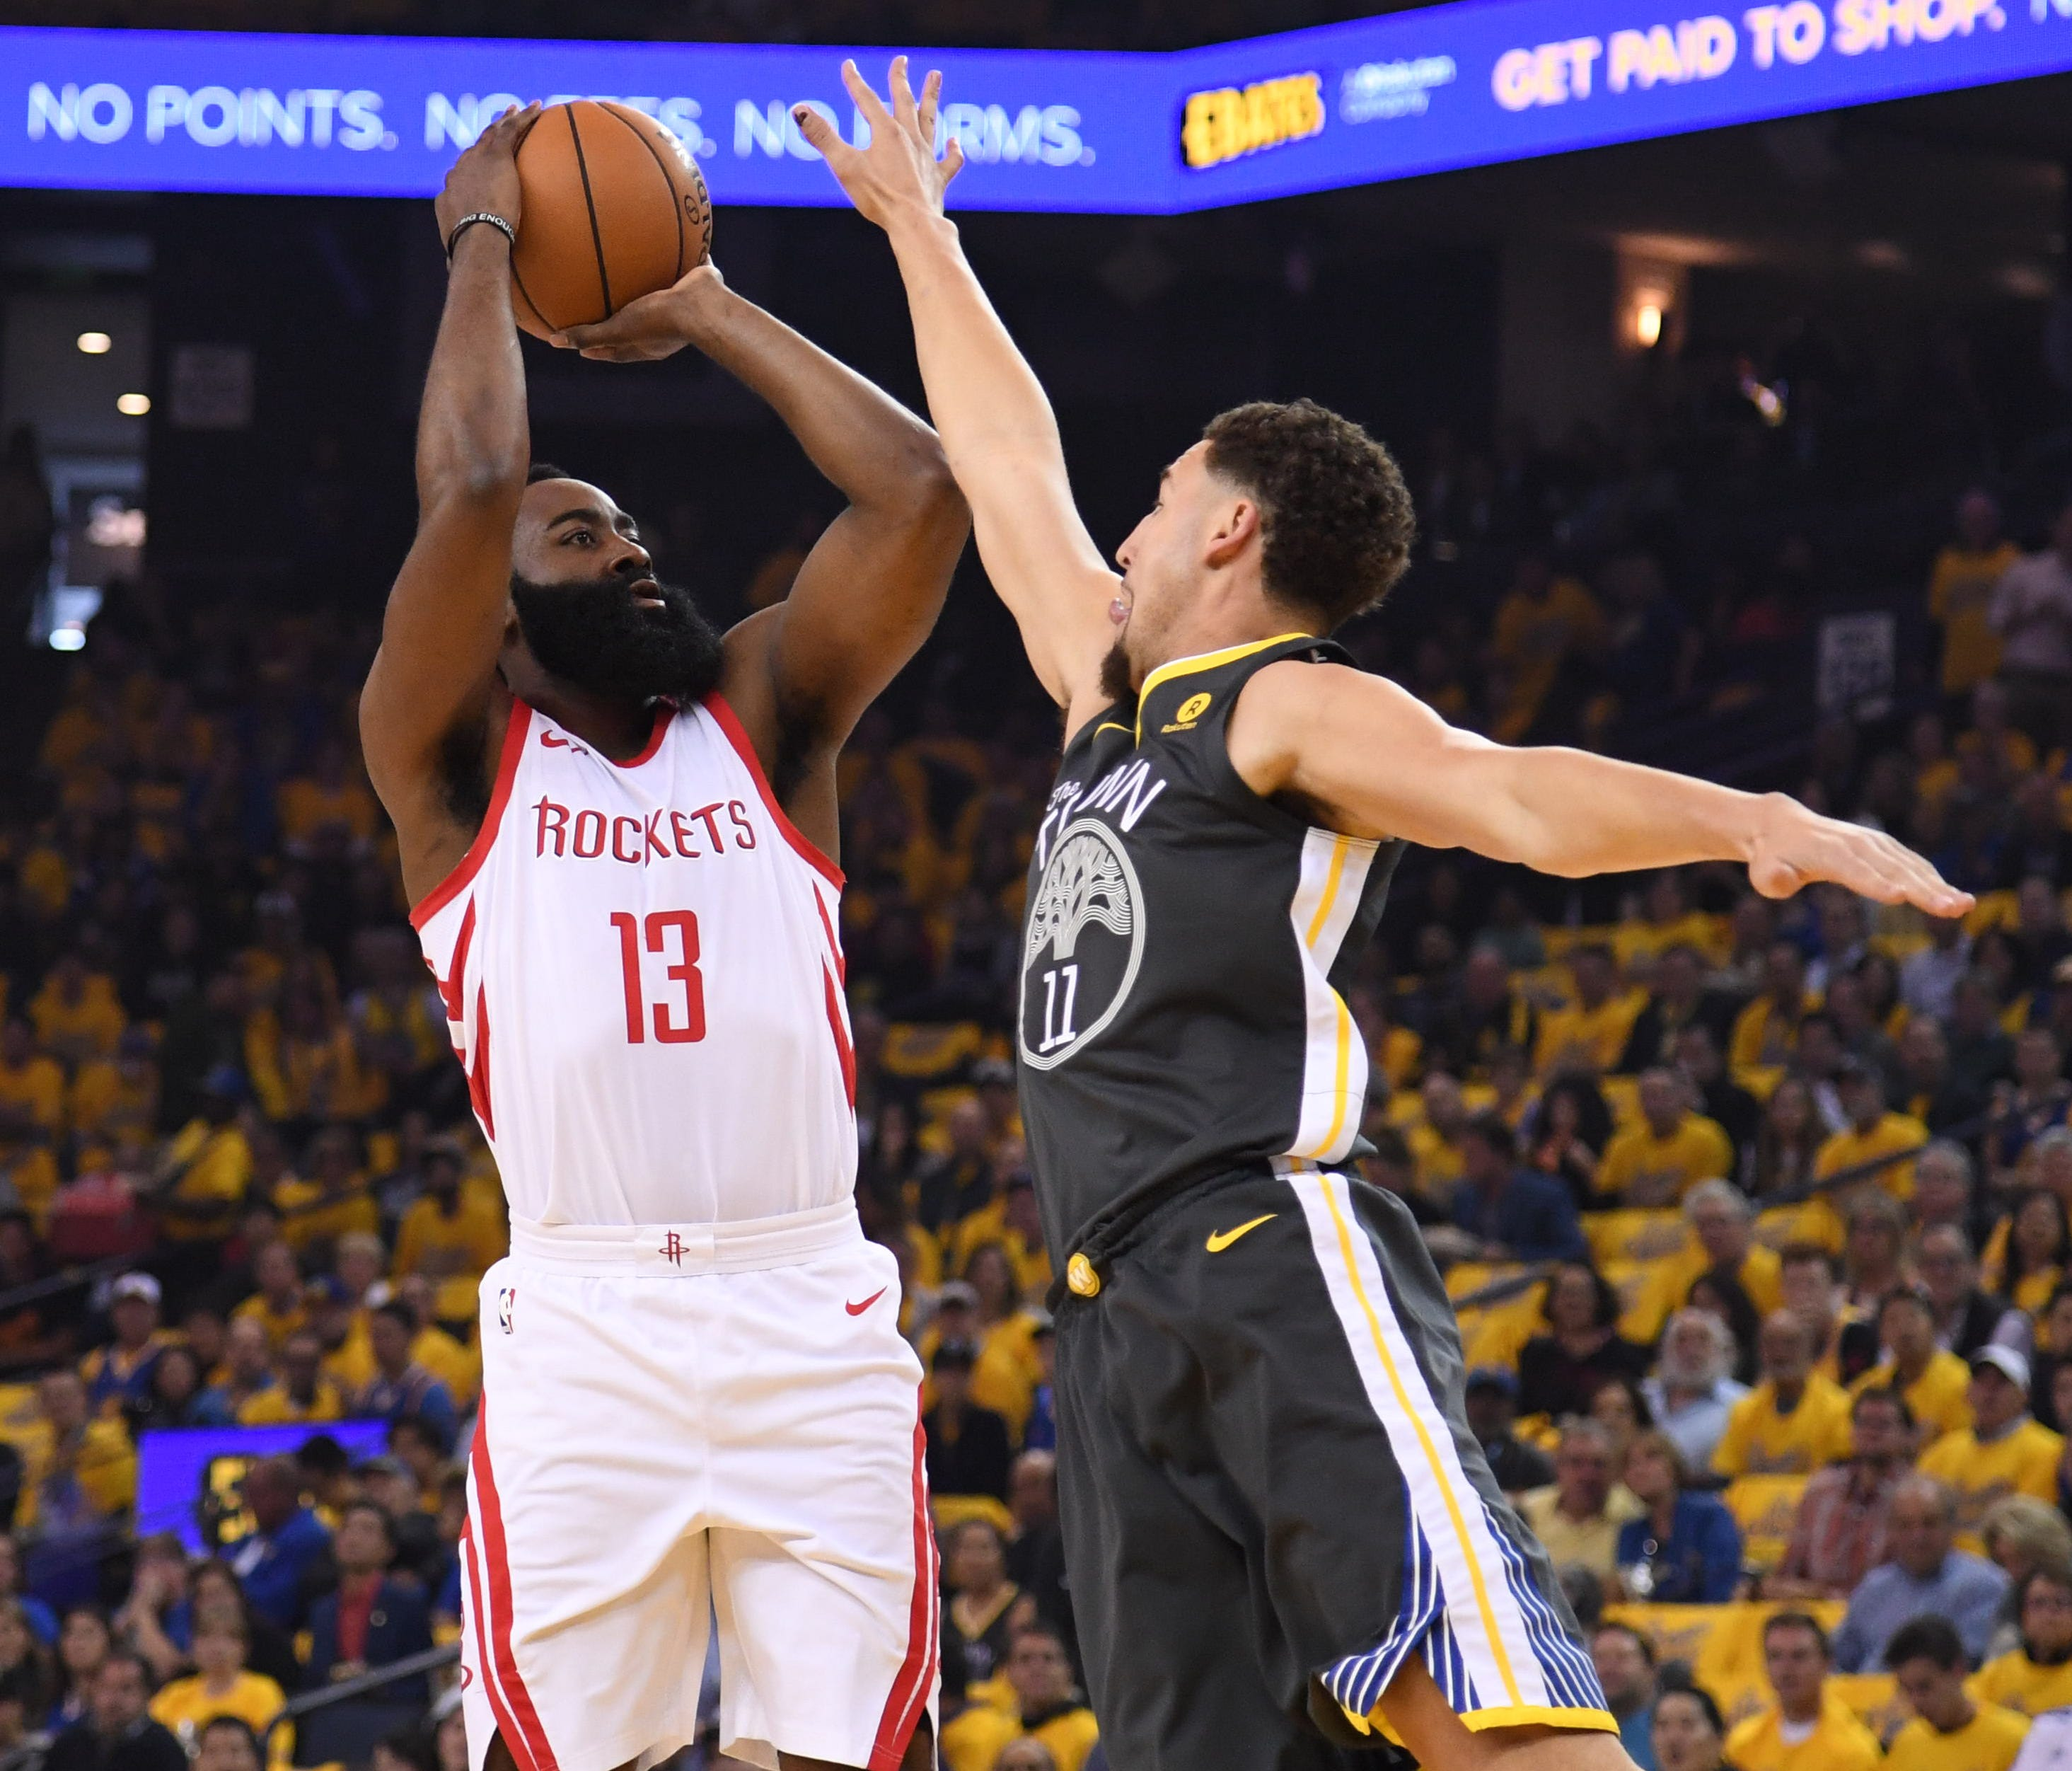 Houston Rockets guard James Harden shoots over Golden State Warriors guard Klay Thompson during the first quarter of Game 4.